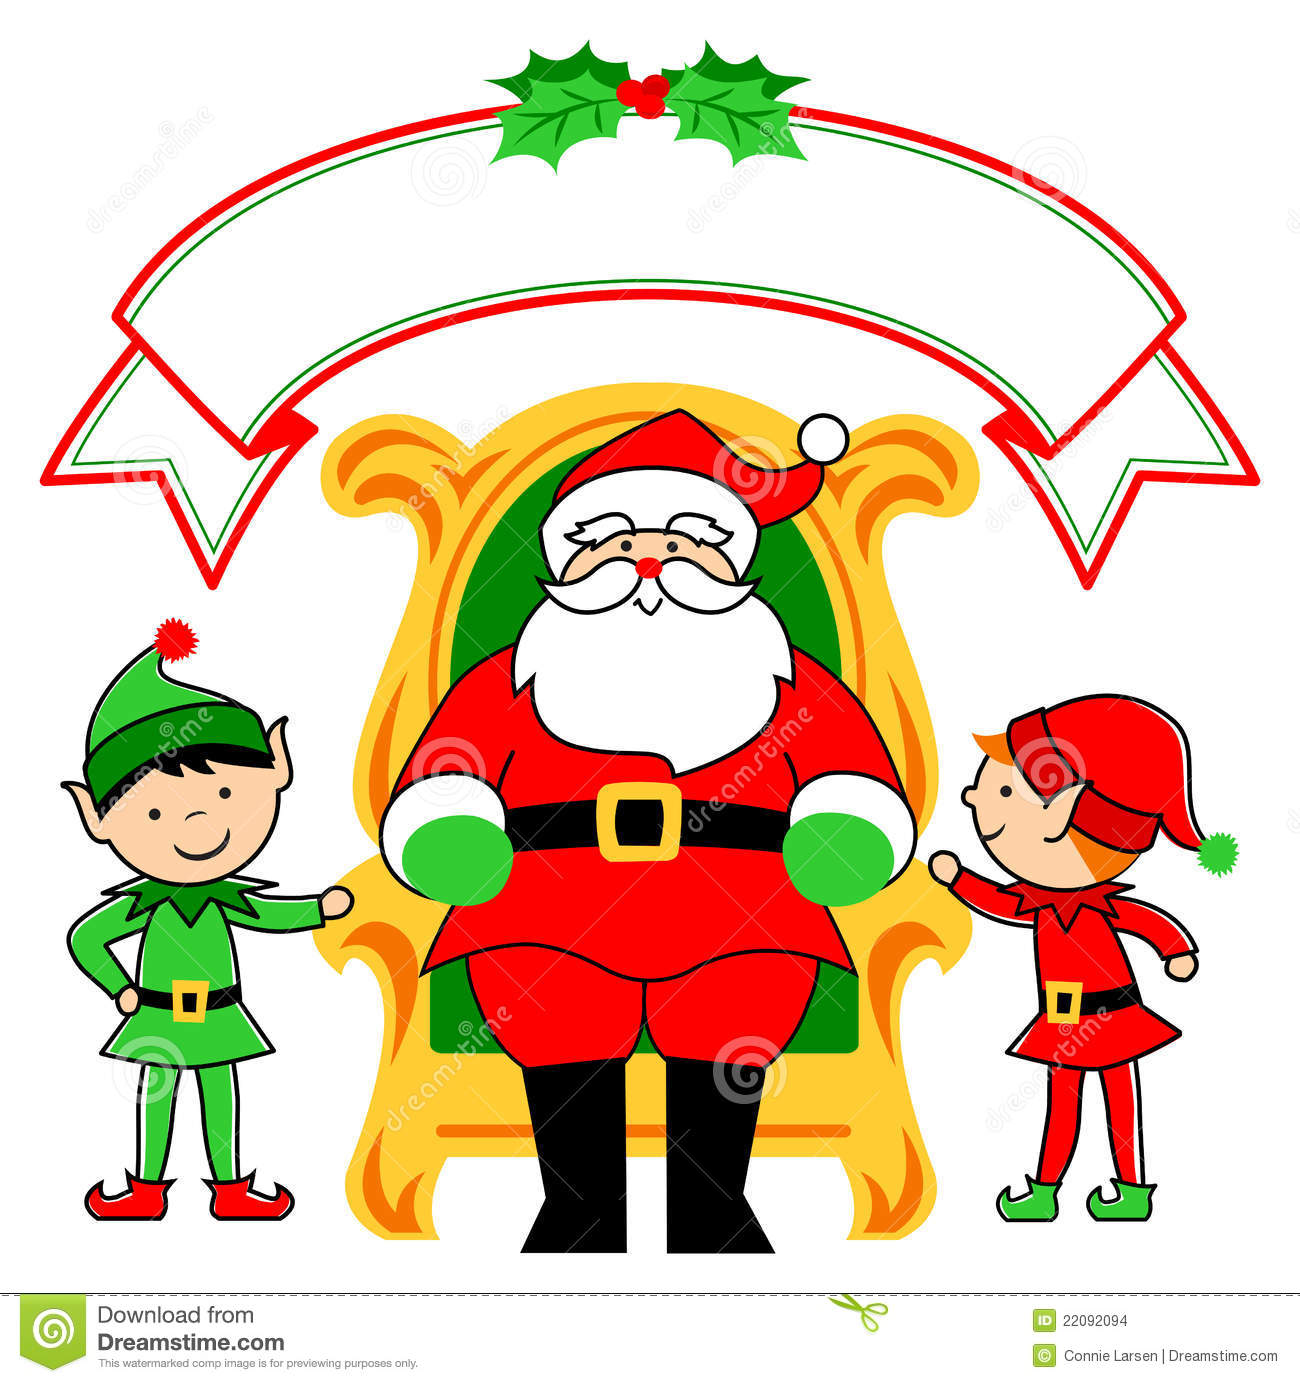 Christmas Santa Elf Clip Art 3 Stock Photos, Images, & Pictures.